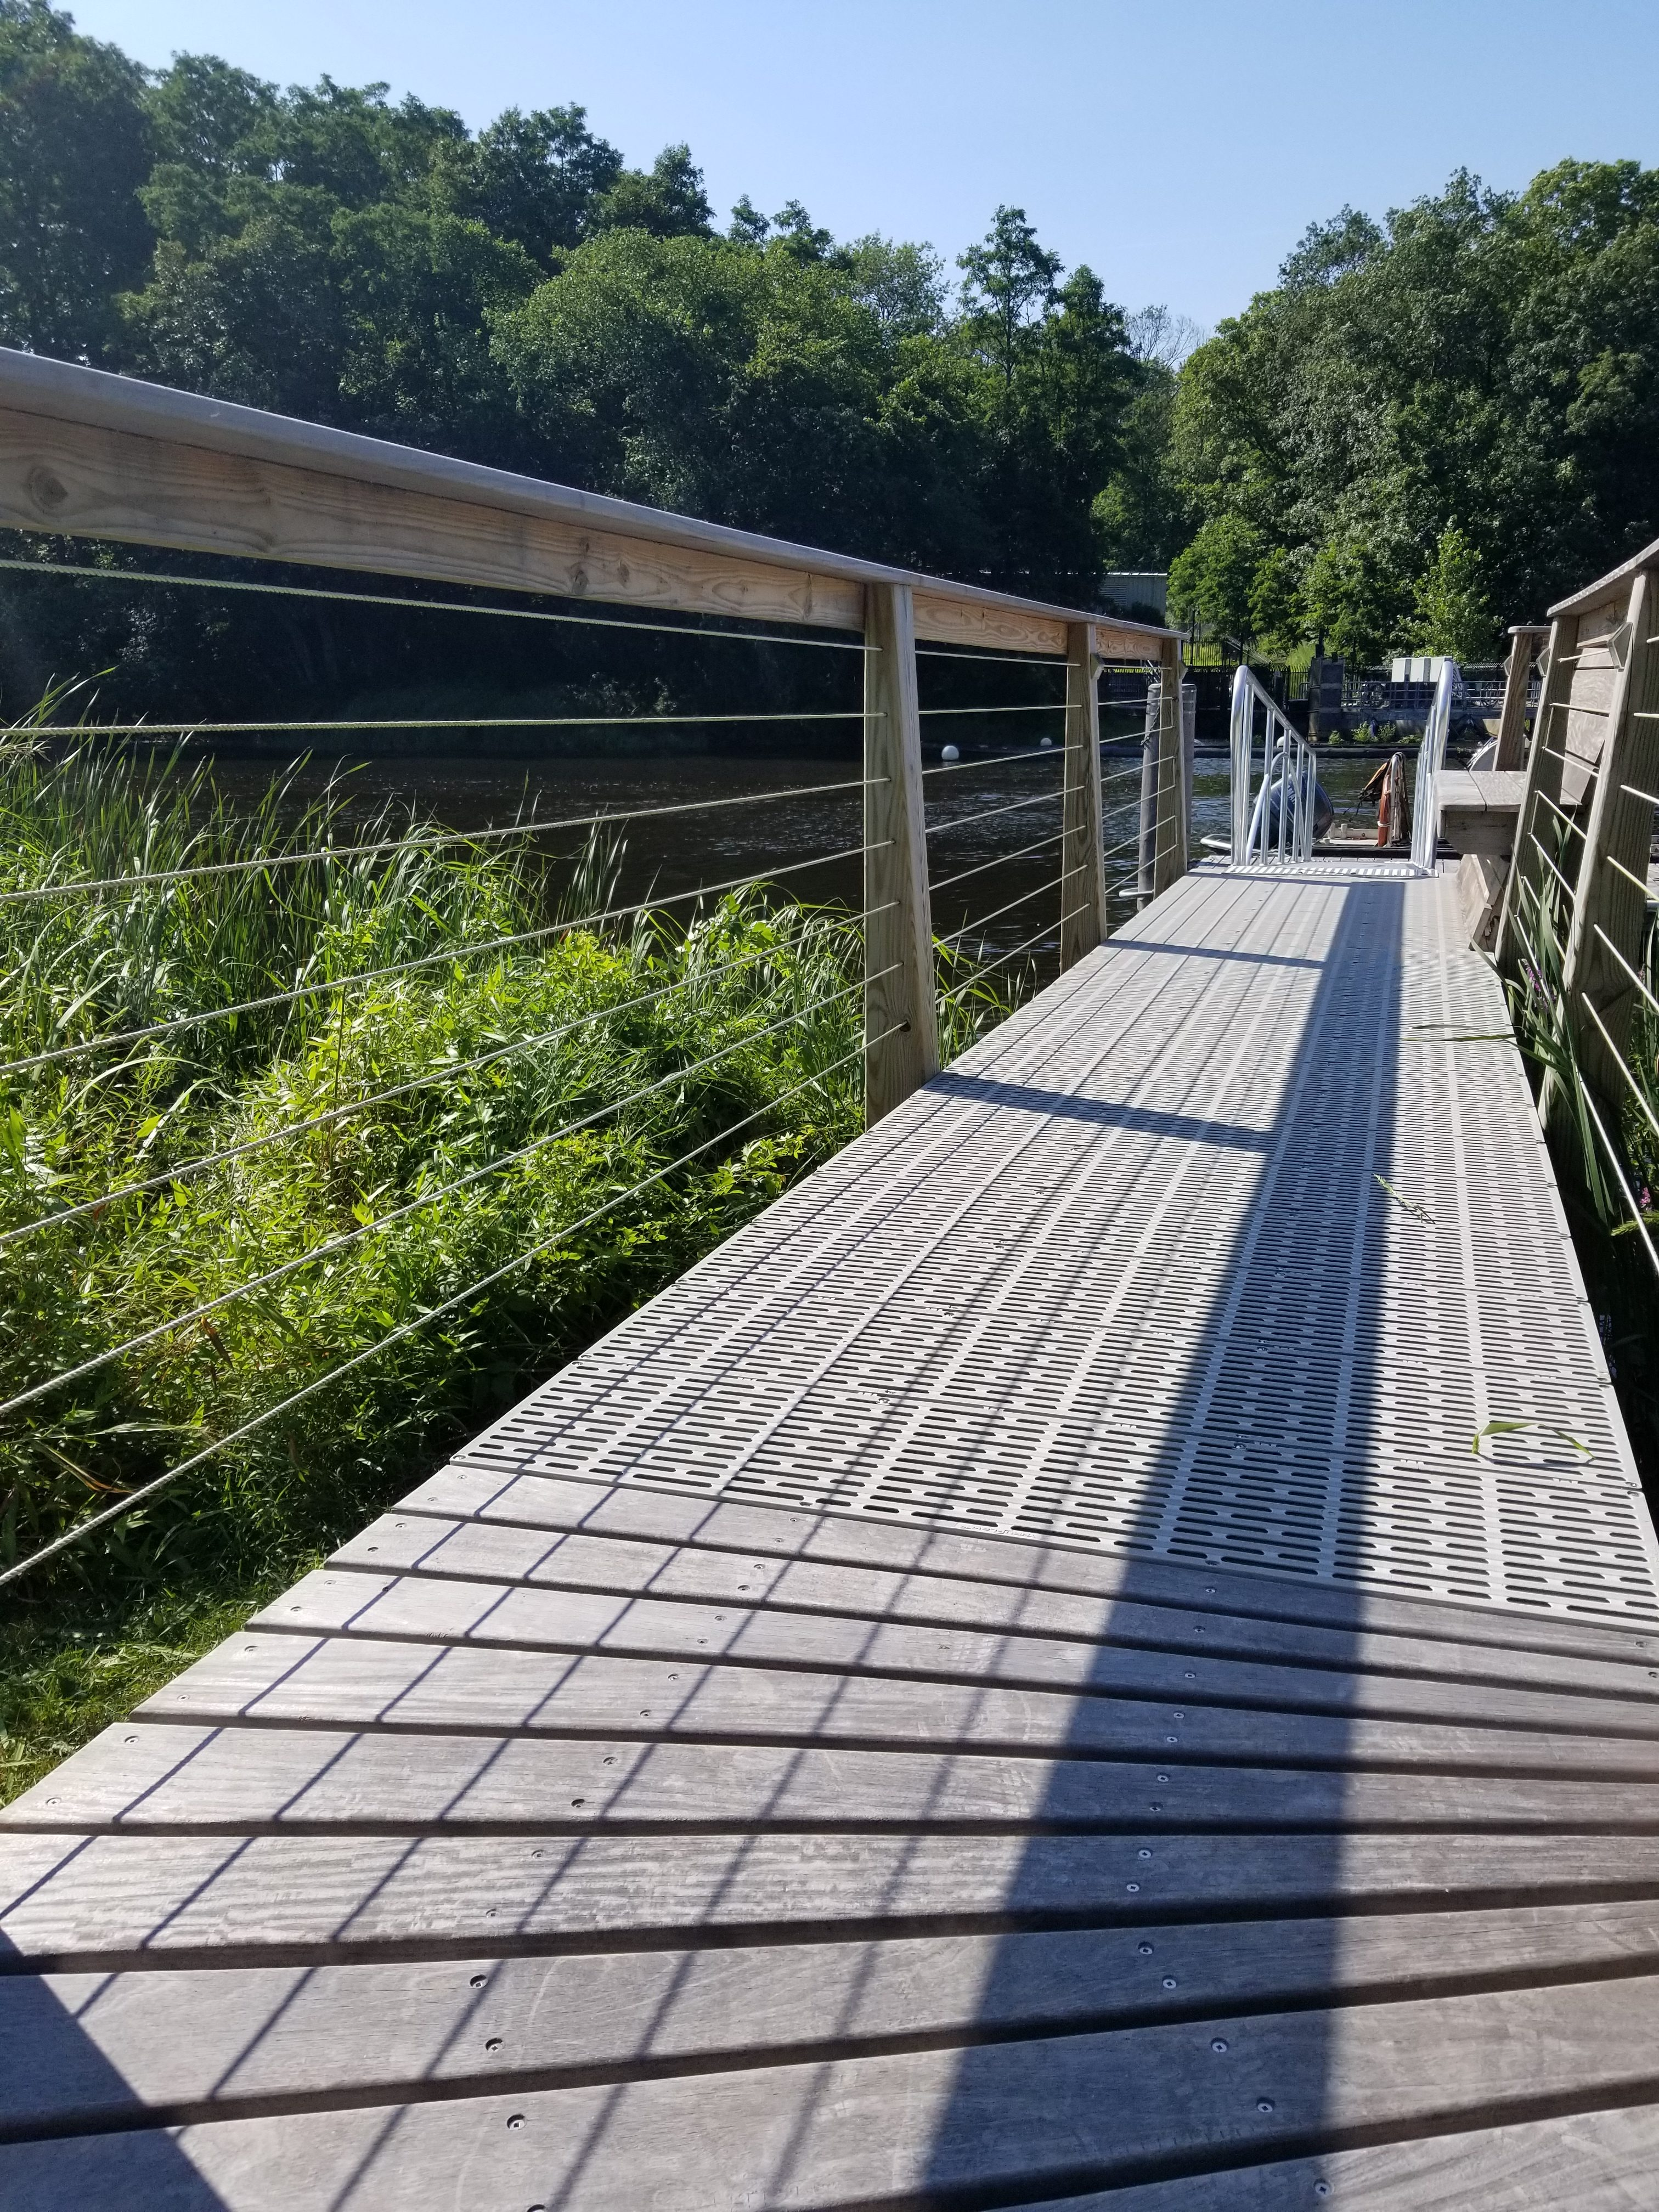 New pier installed in protected river - Berkley MA